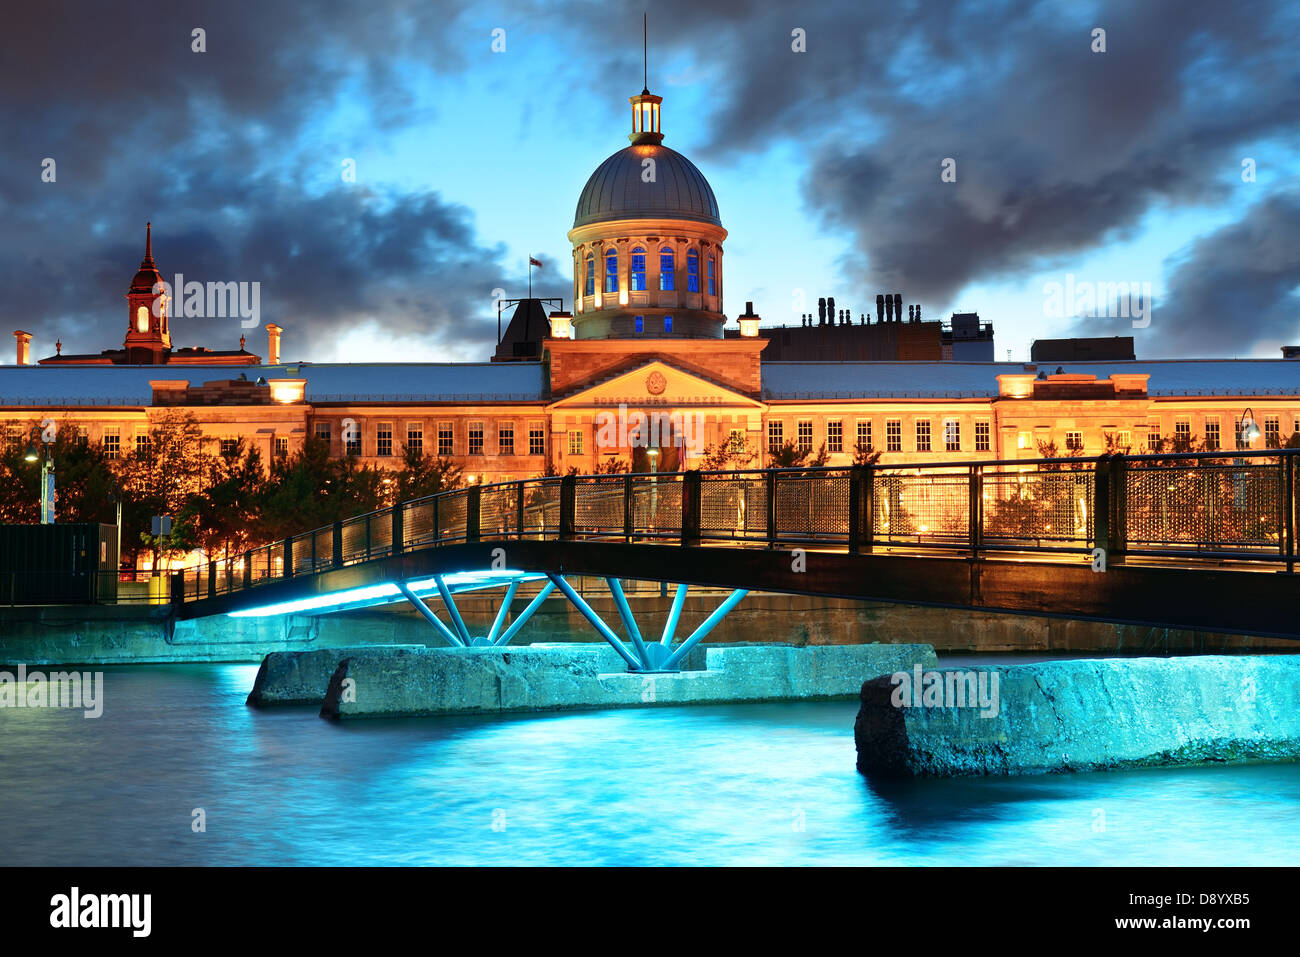 Old architecture at dusk on street in Old Montreal in Canada - Stock Image